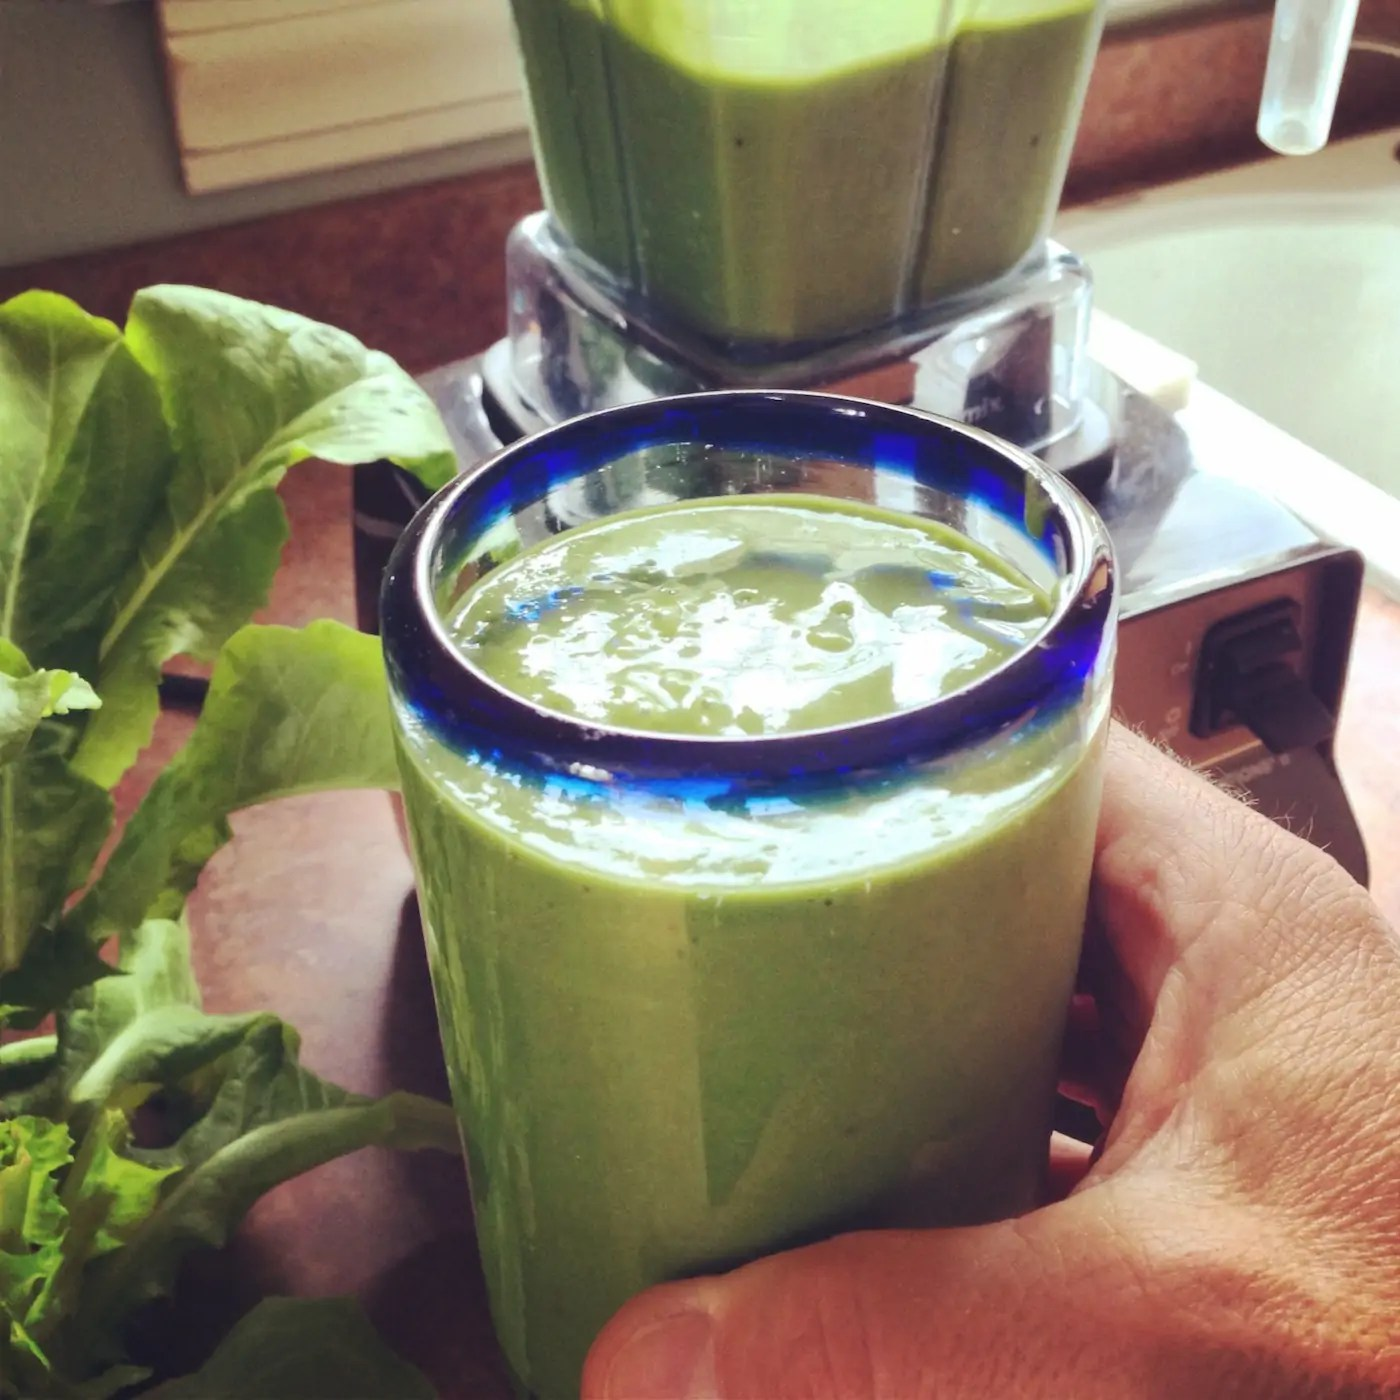 Glass filled with green smoothie.